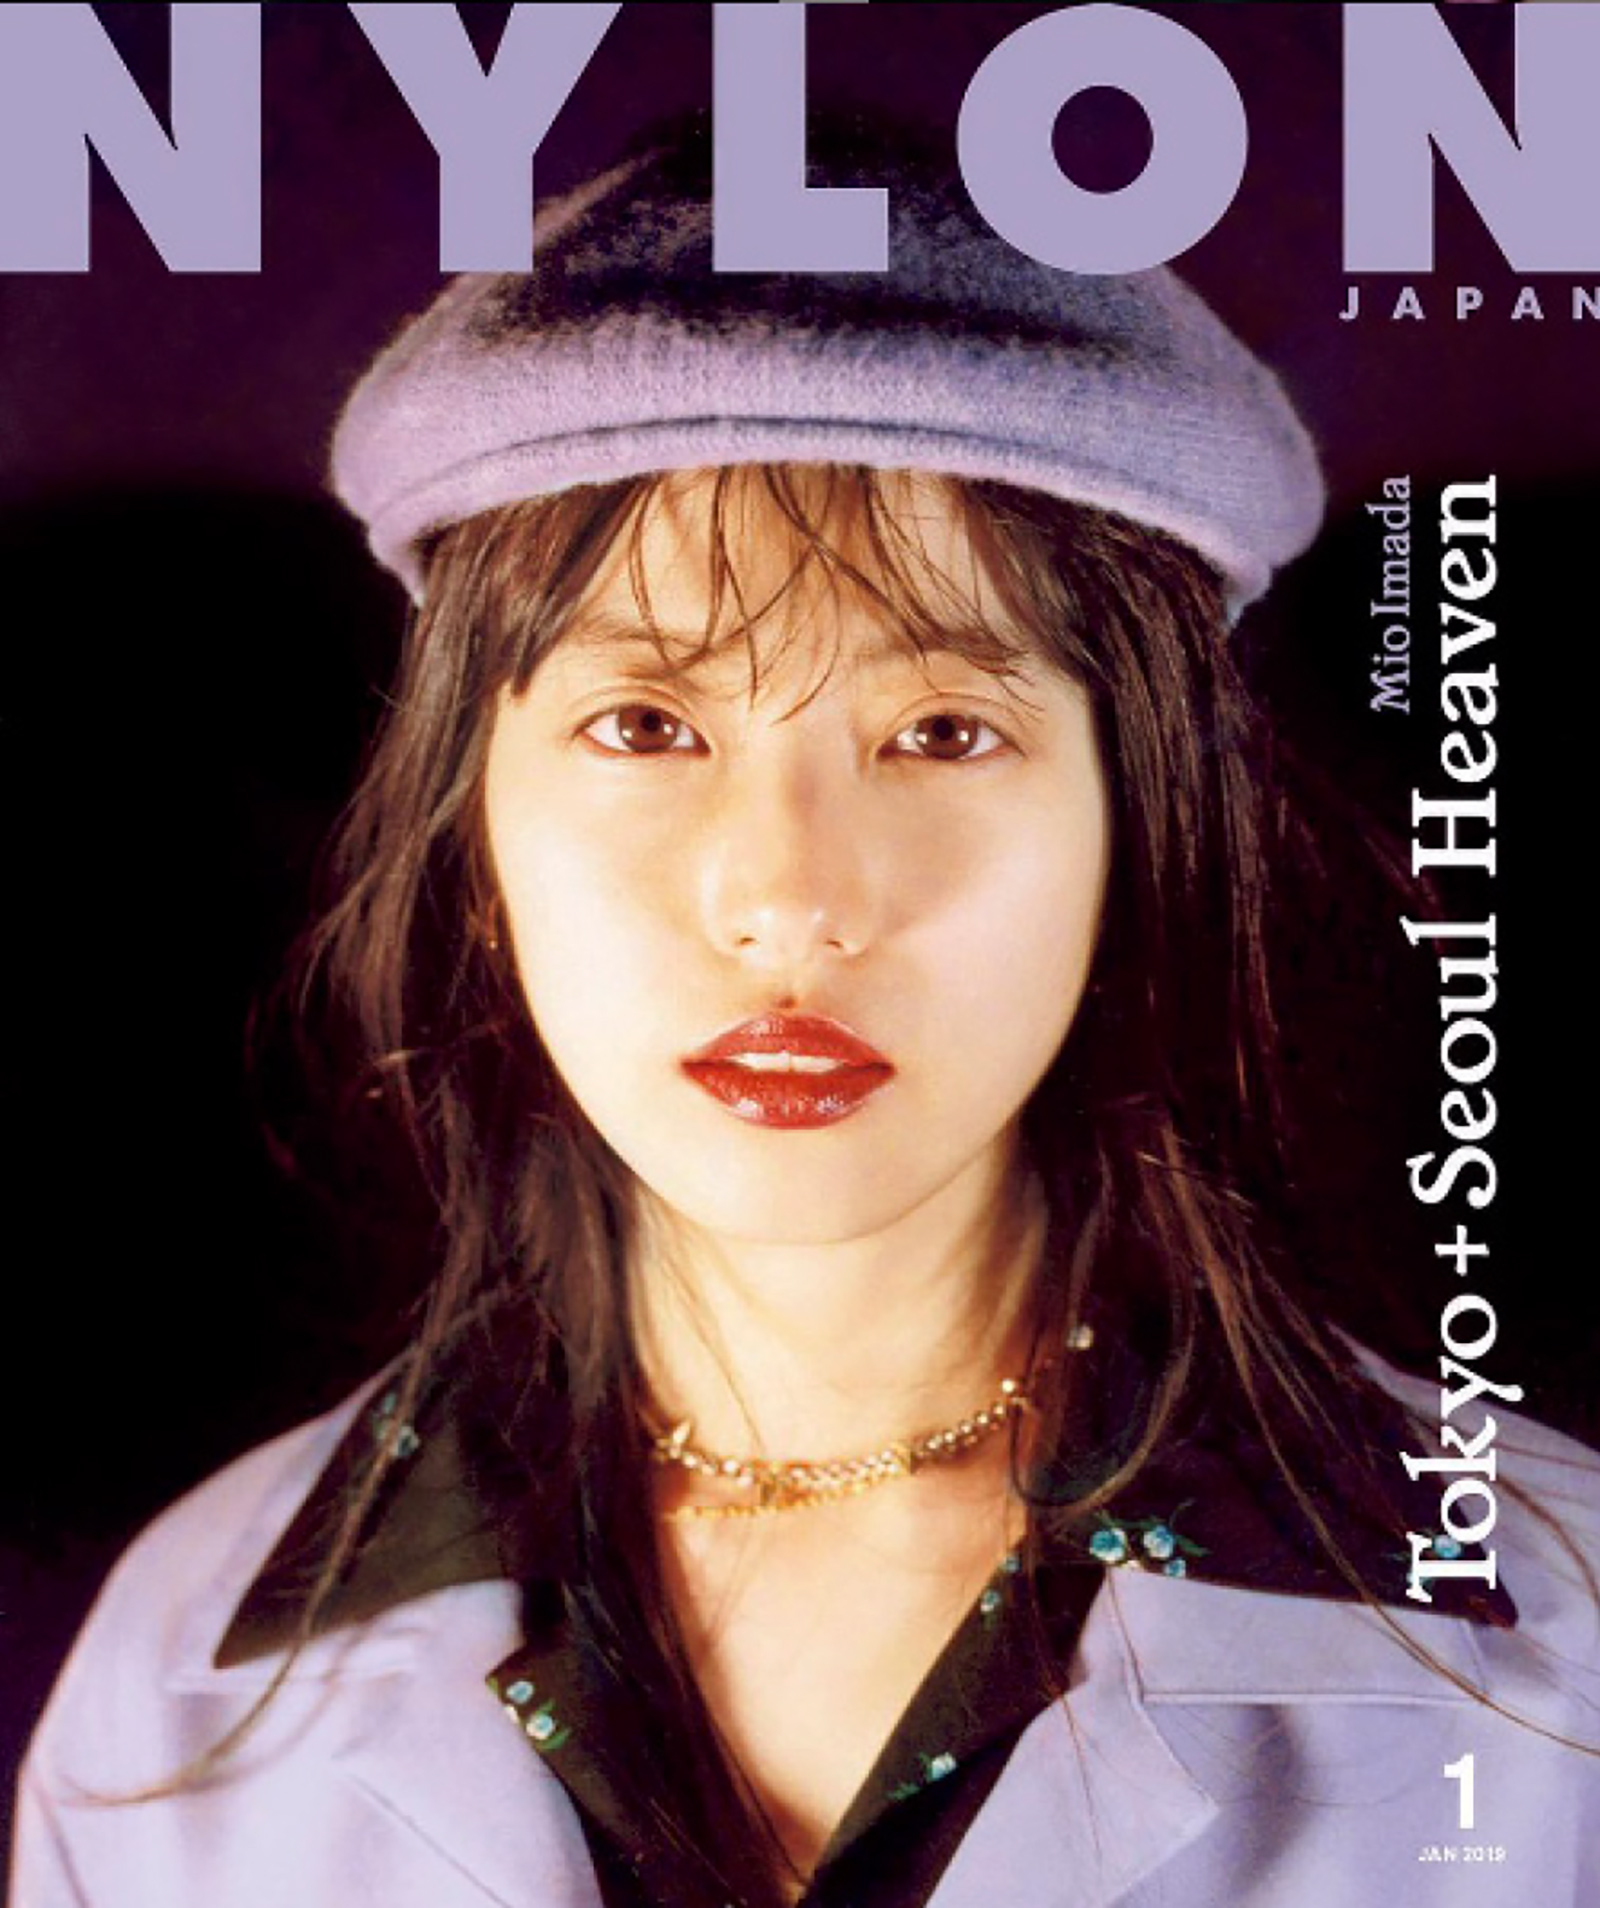 Nylon Japan_Mio Imada